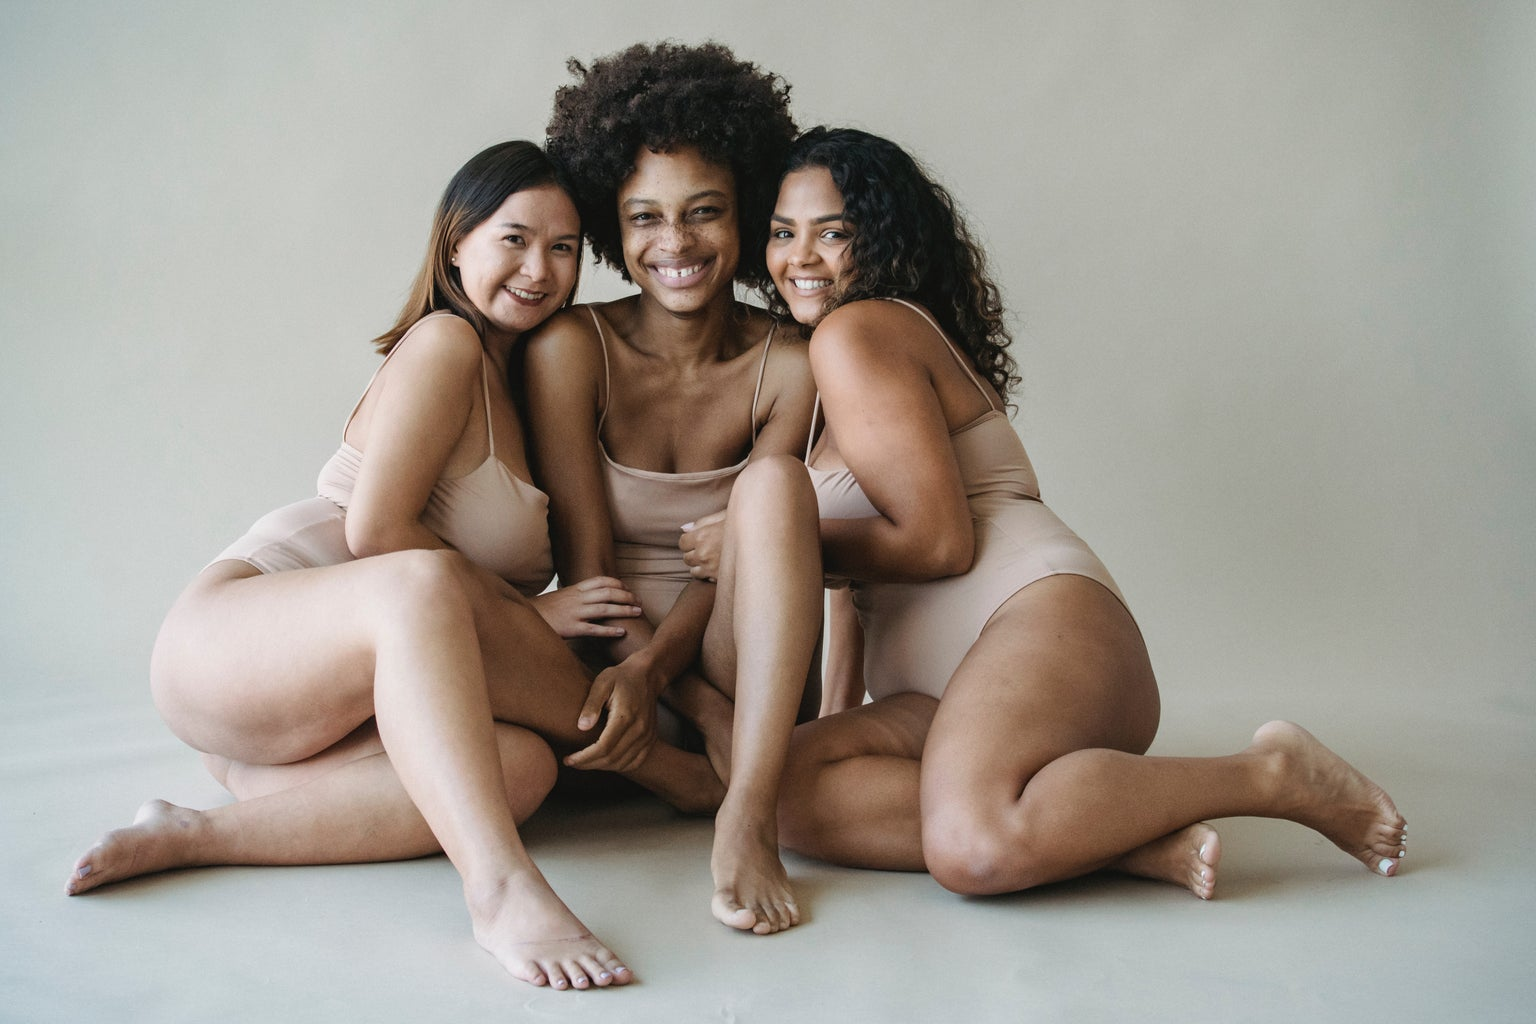 three women in brown tank tops and shorts against a white backdrop